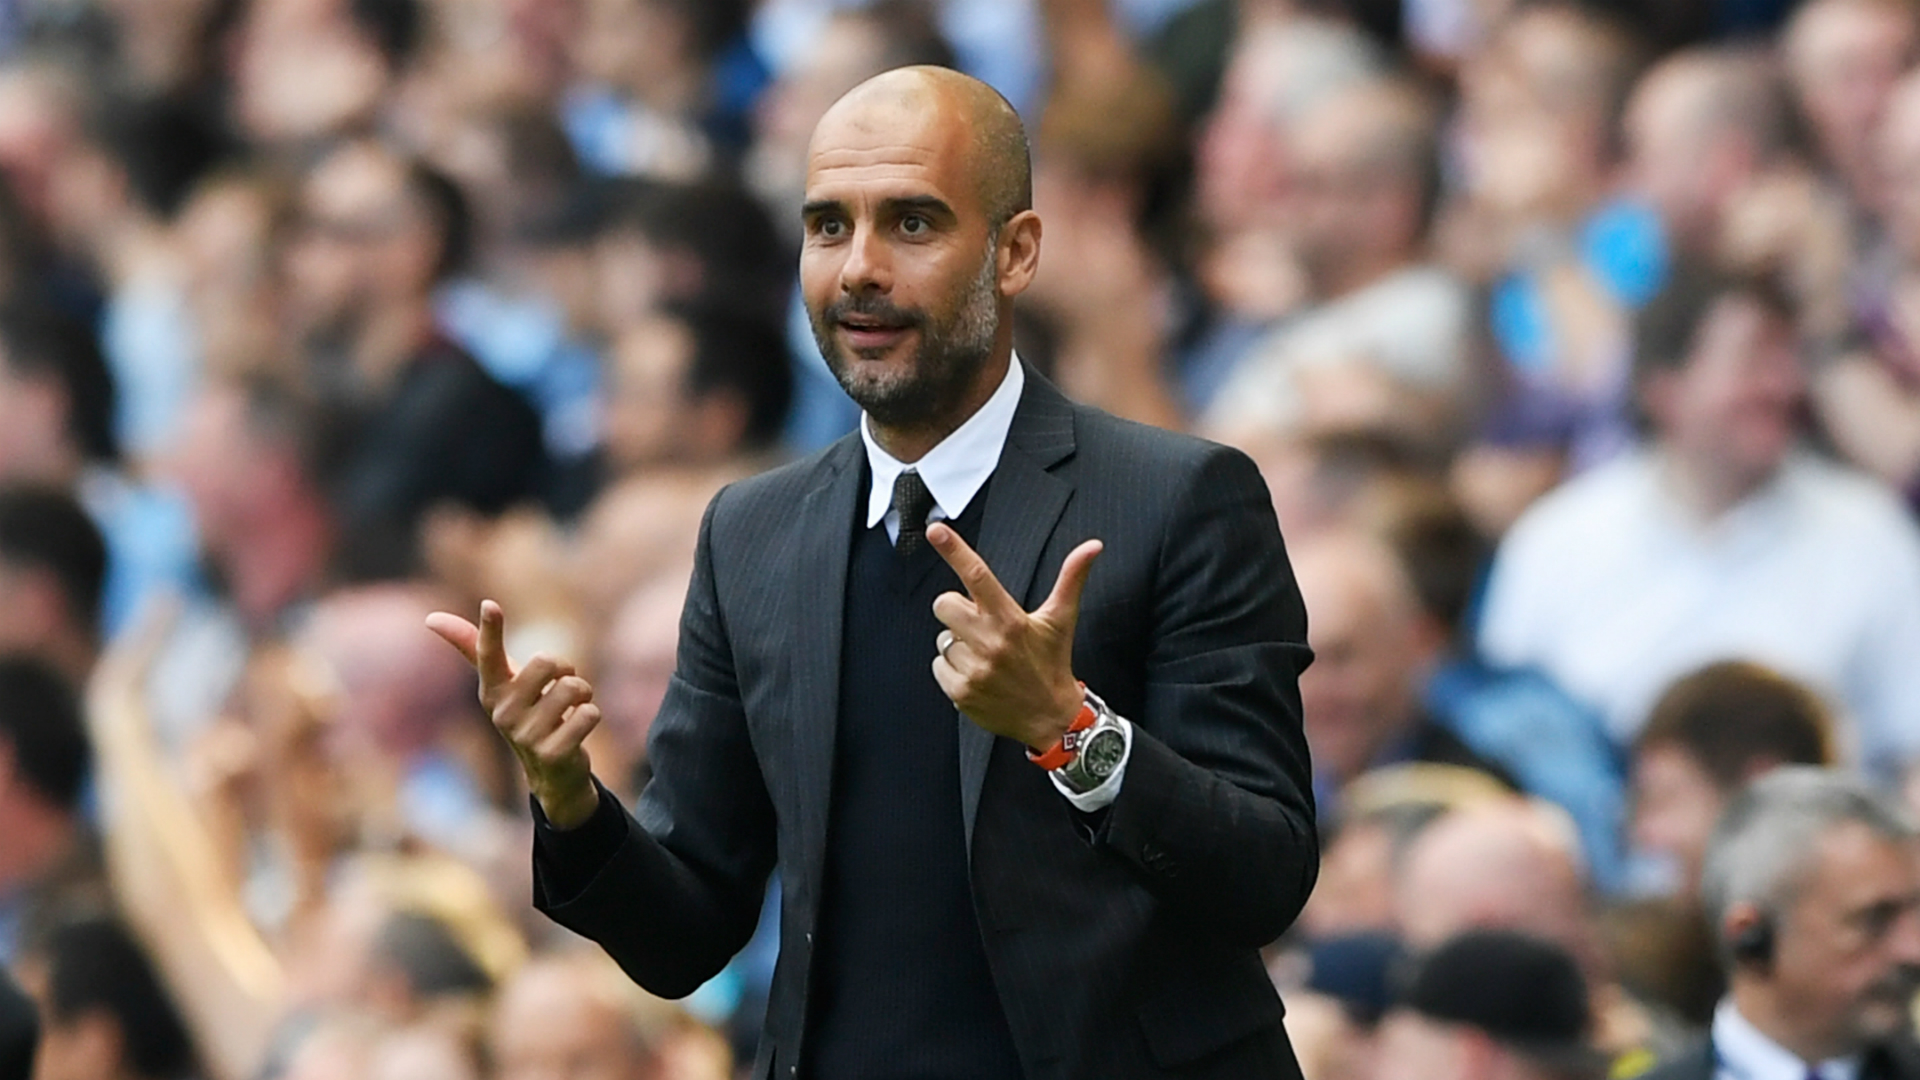 Manchester City 'have permission to play awful' - Guardiola